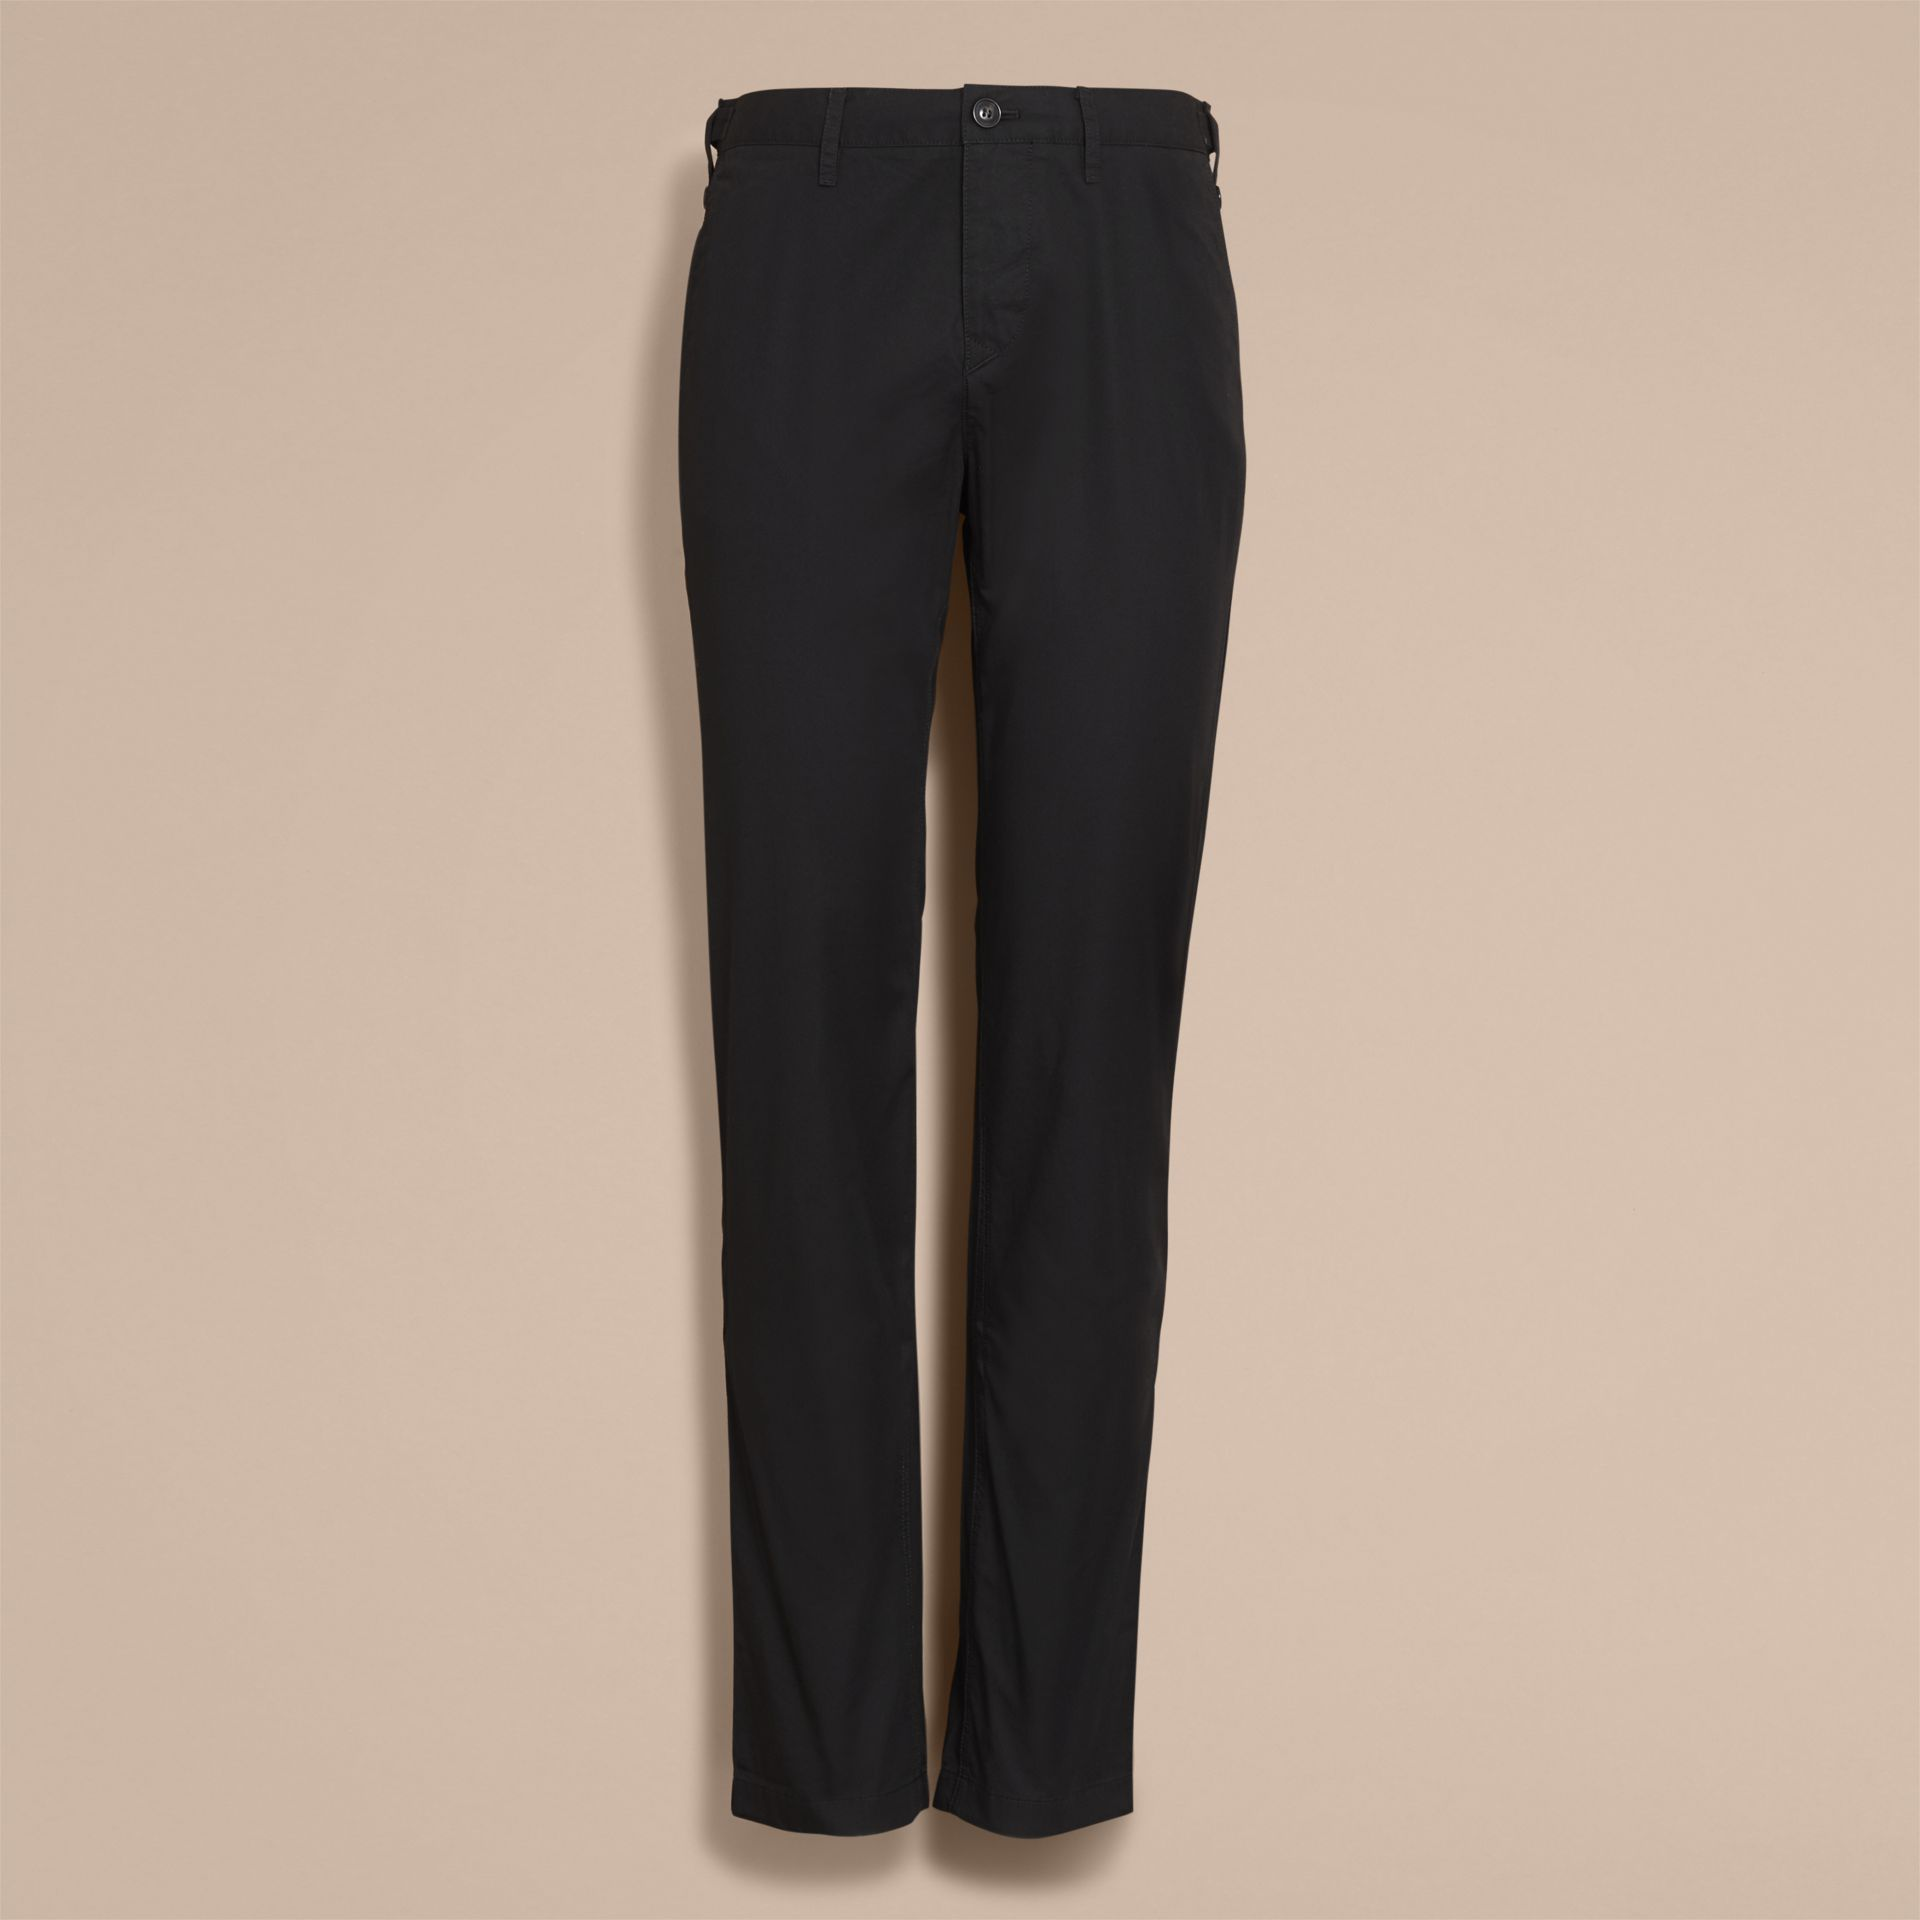 Straight Fit Cotton Chinos in Black - Men | Burberry United States - gallery image 4